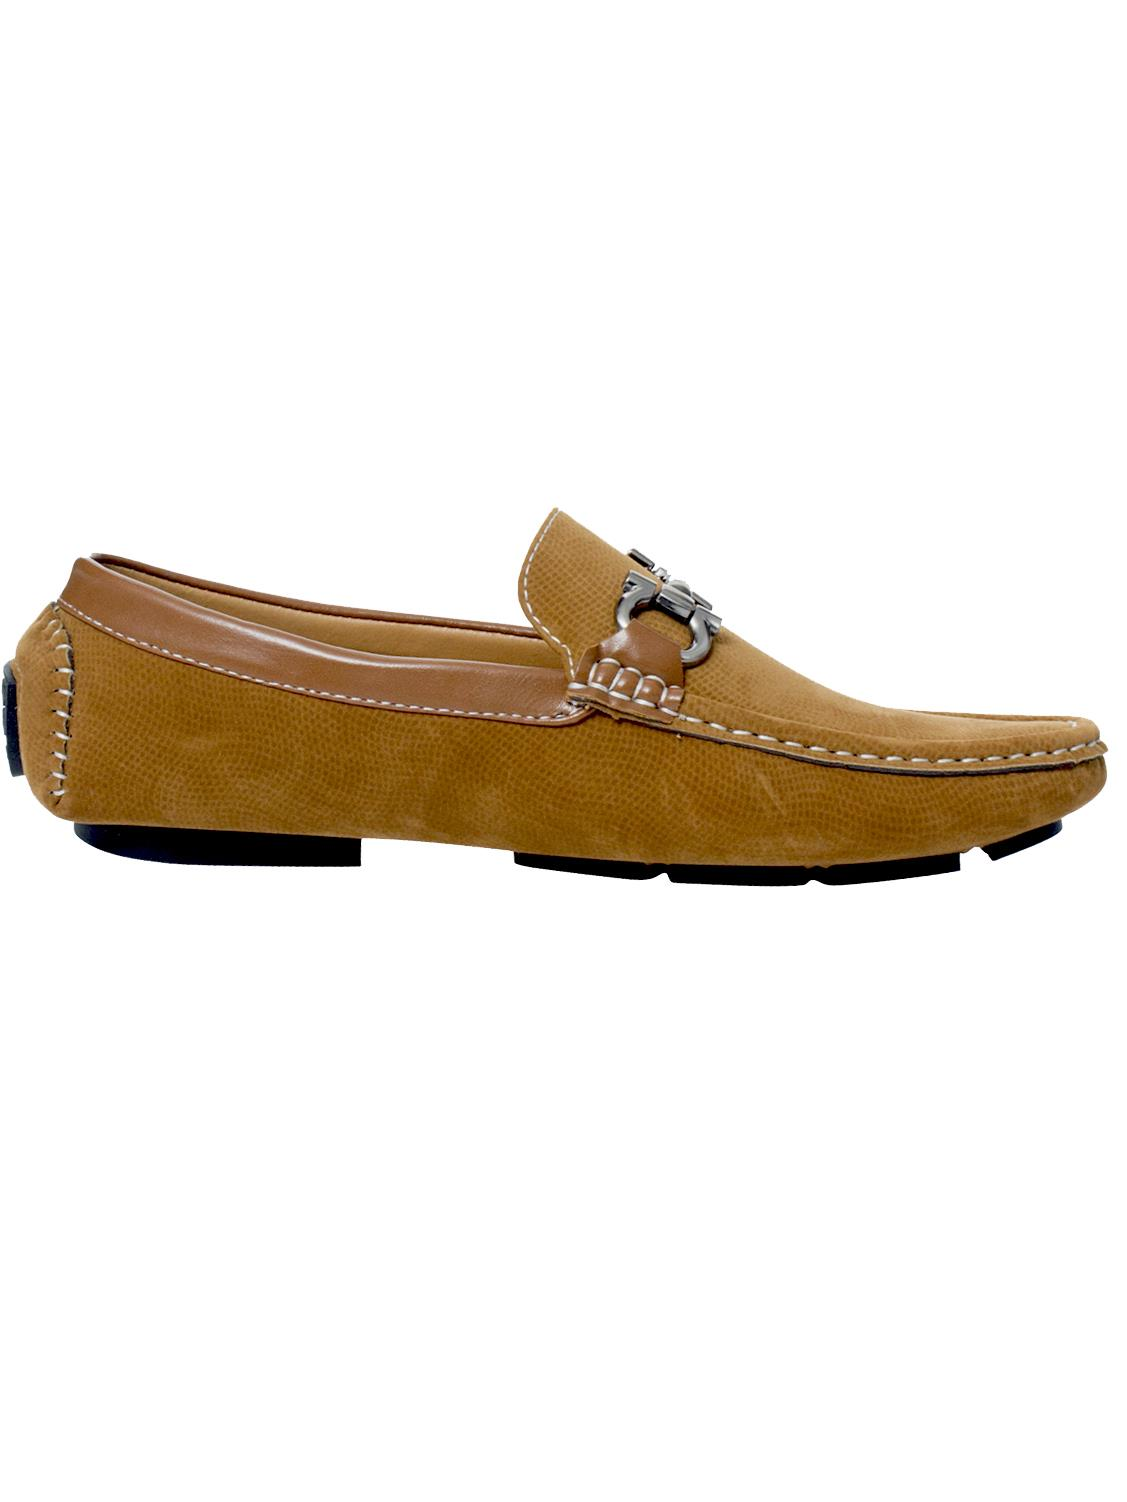 Mens-Slip-Ons-Shoes-Boat-Deck-Driving-Smart-Buckle-Moccasins-Suede-Look-Loafers thumbnail 86